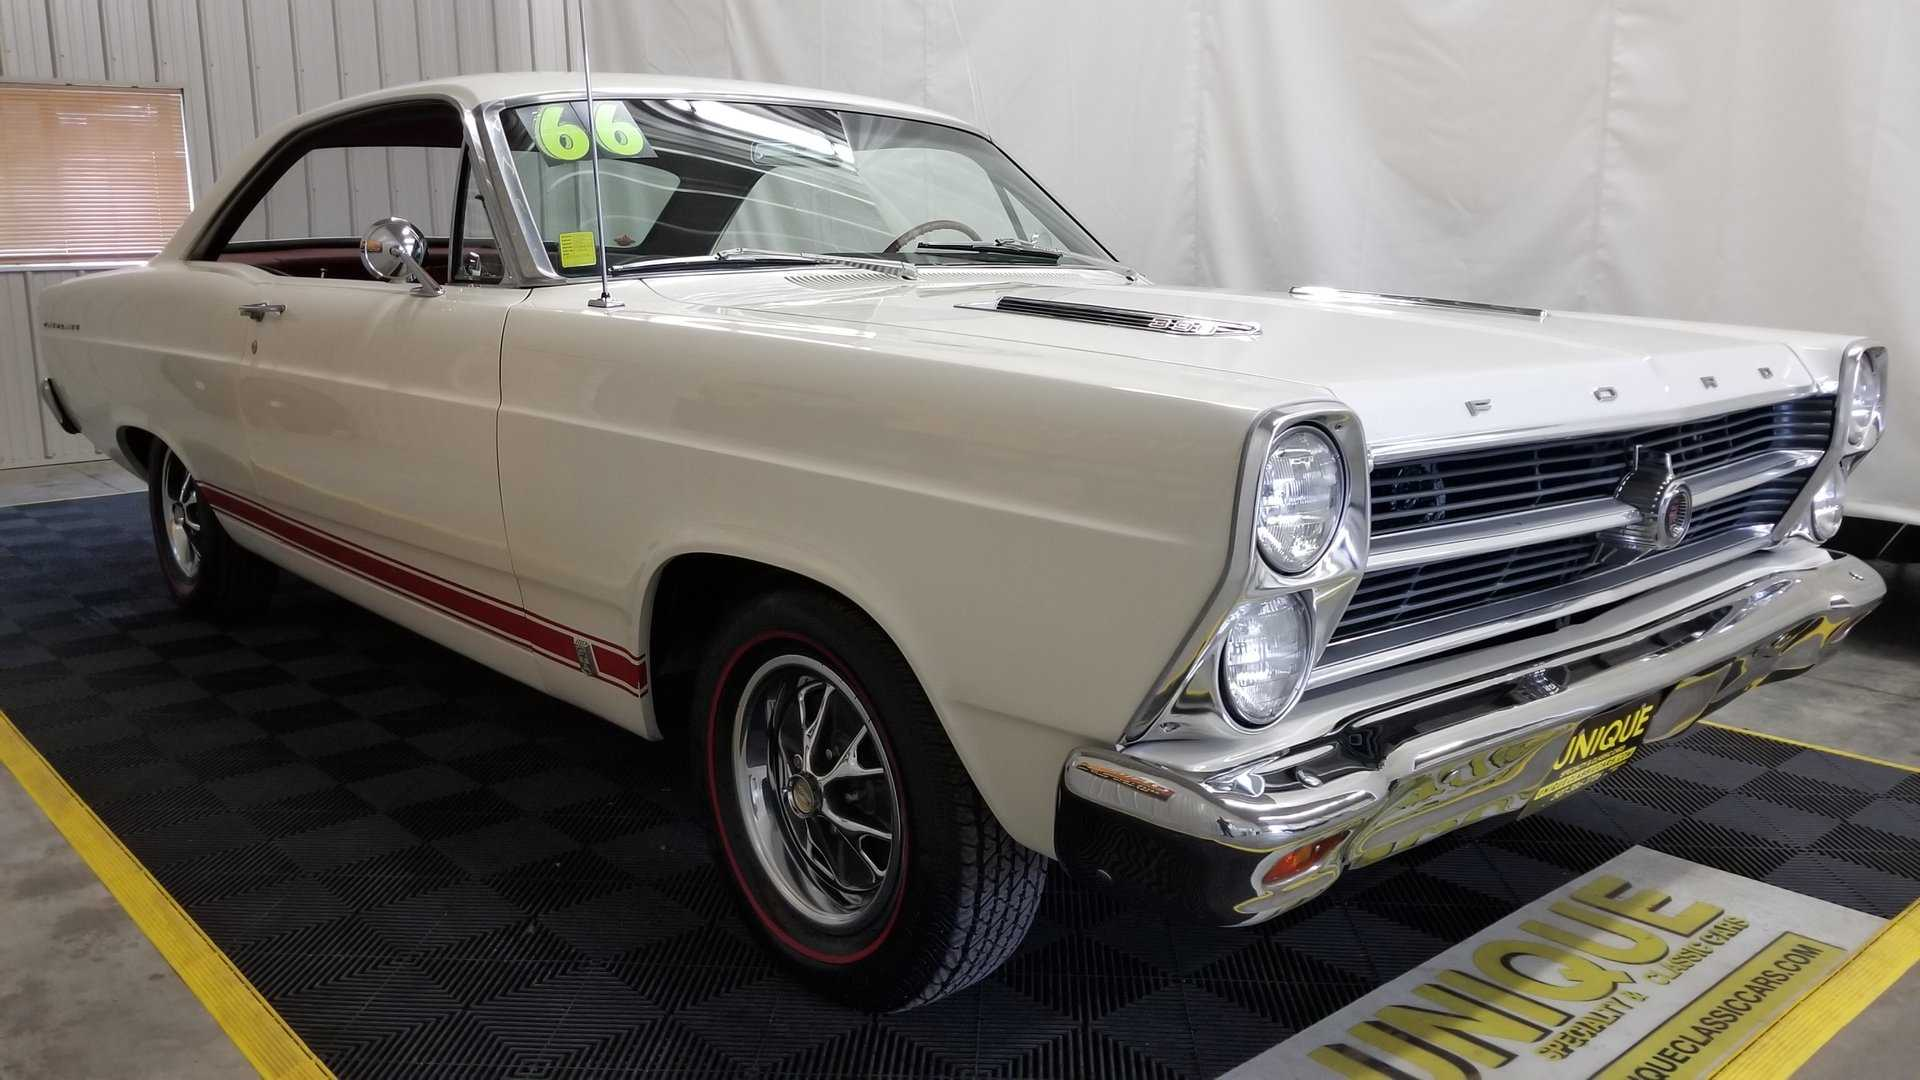 You Could Own This Solid 1966 Ford Fairlane GTA S-Code